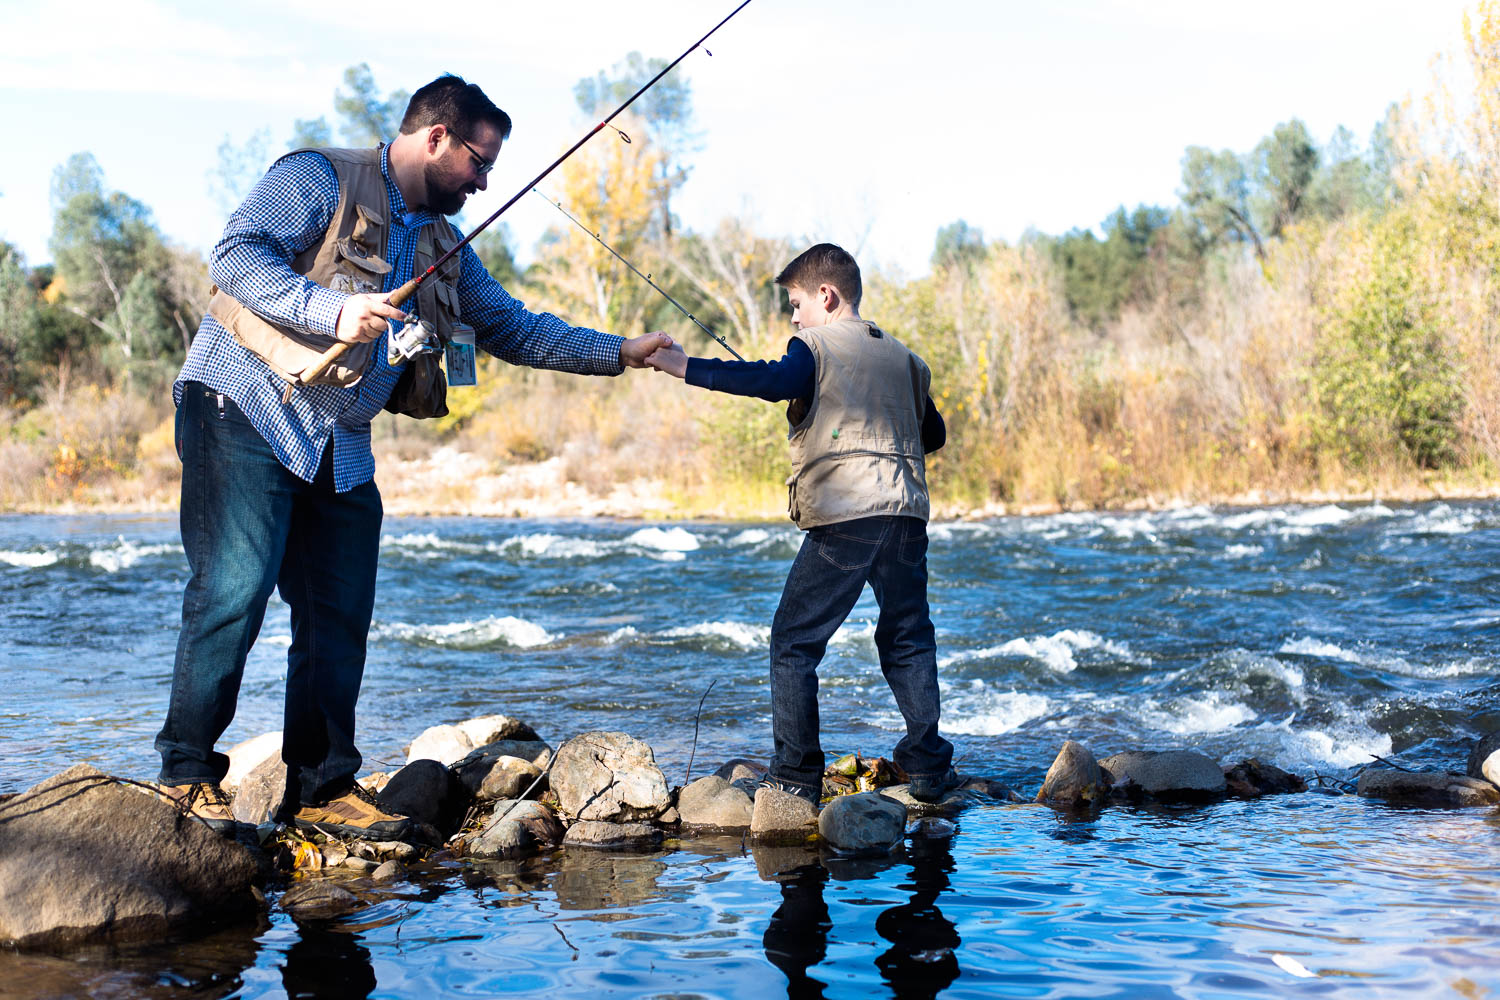 Dad and son fishing together holding hands crossing over river